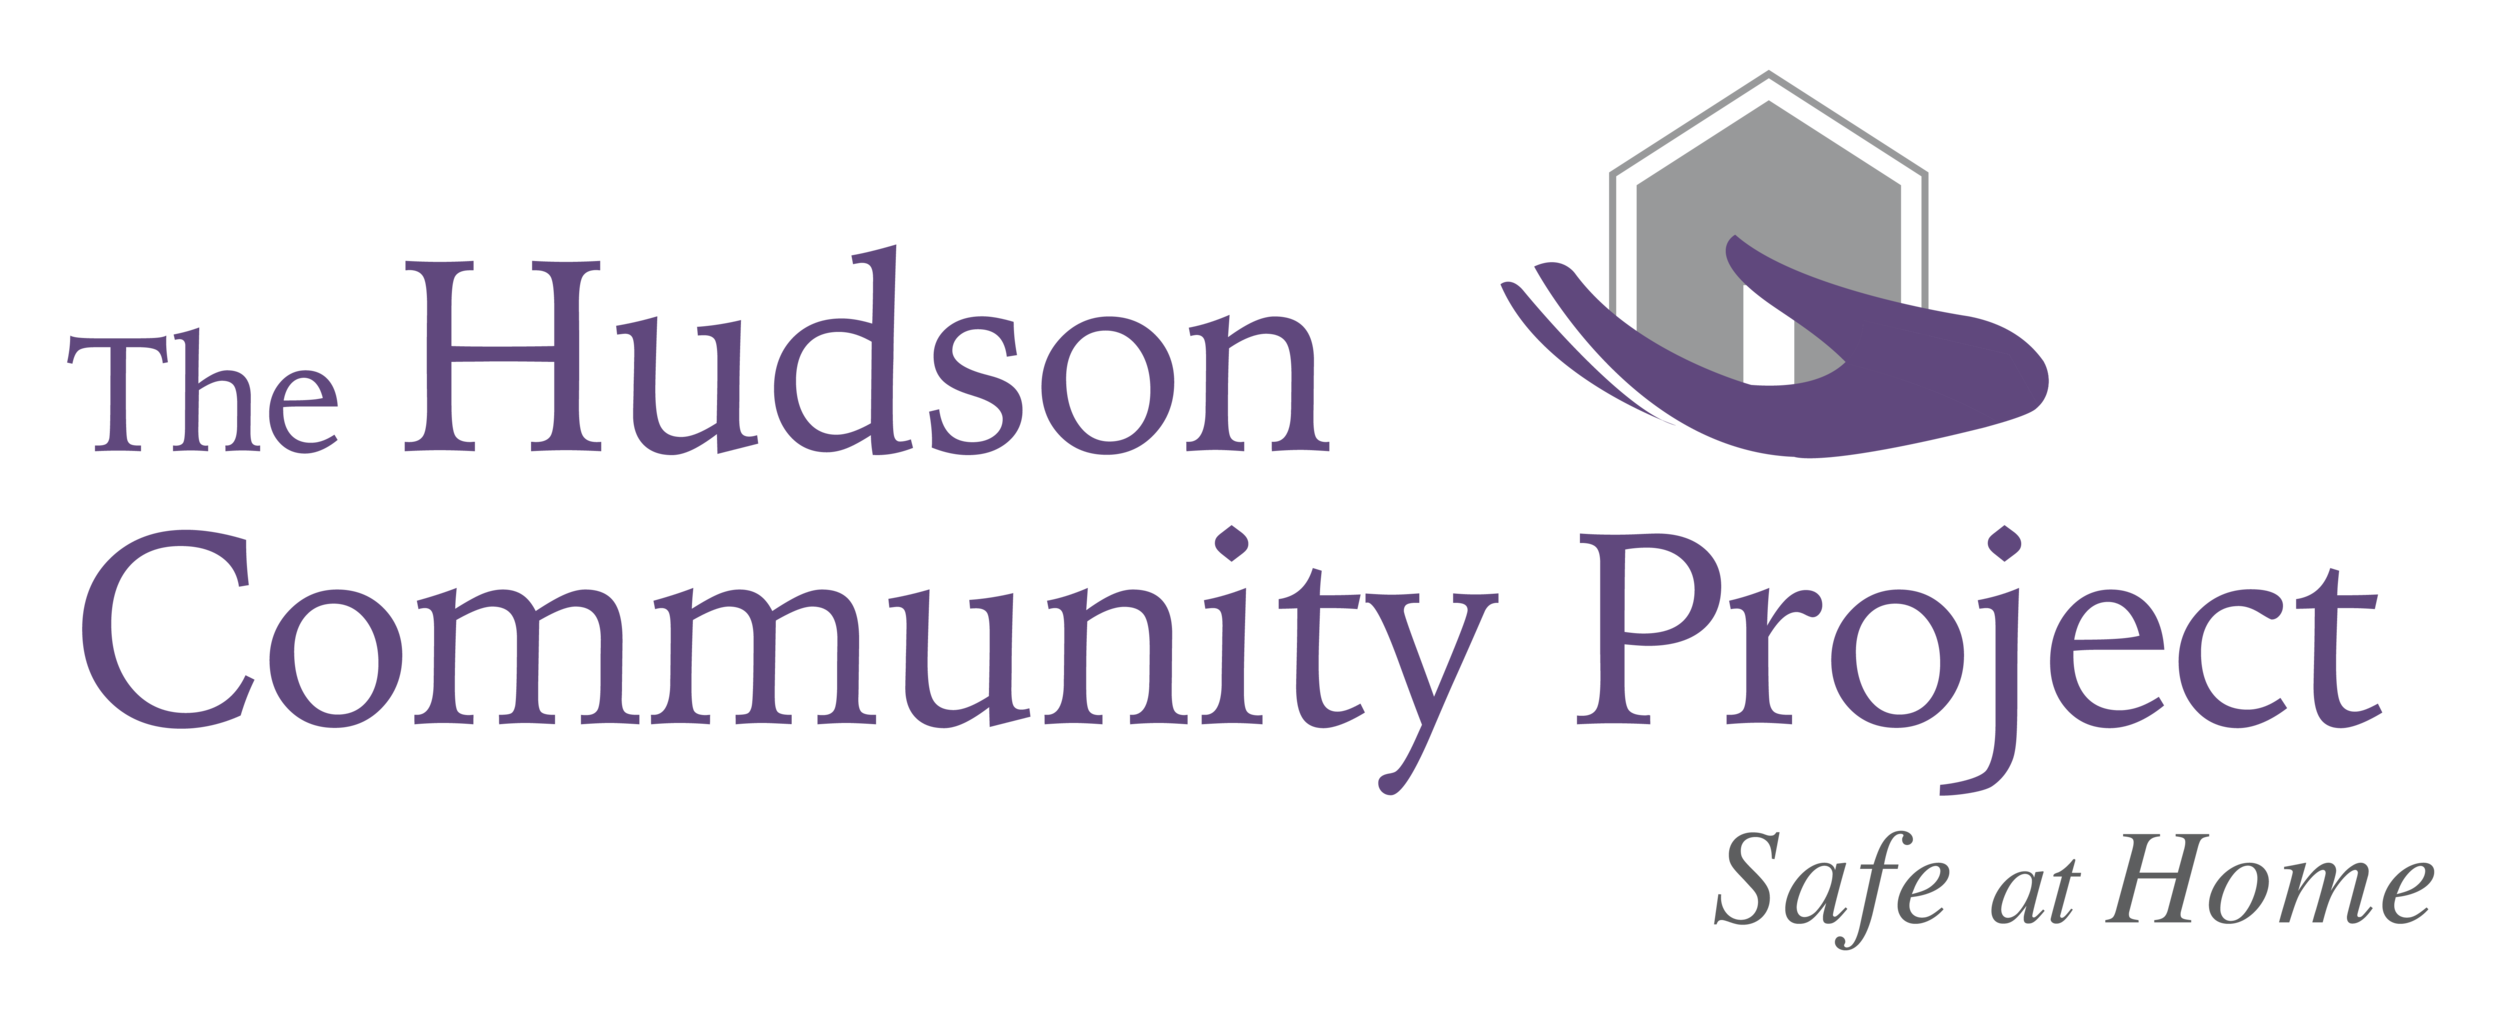 Hudson Community Project Safe at Home